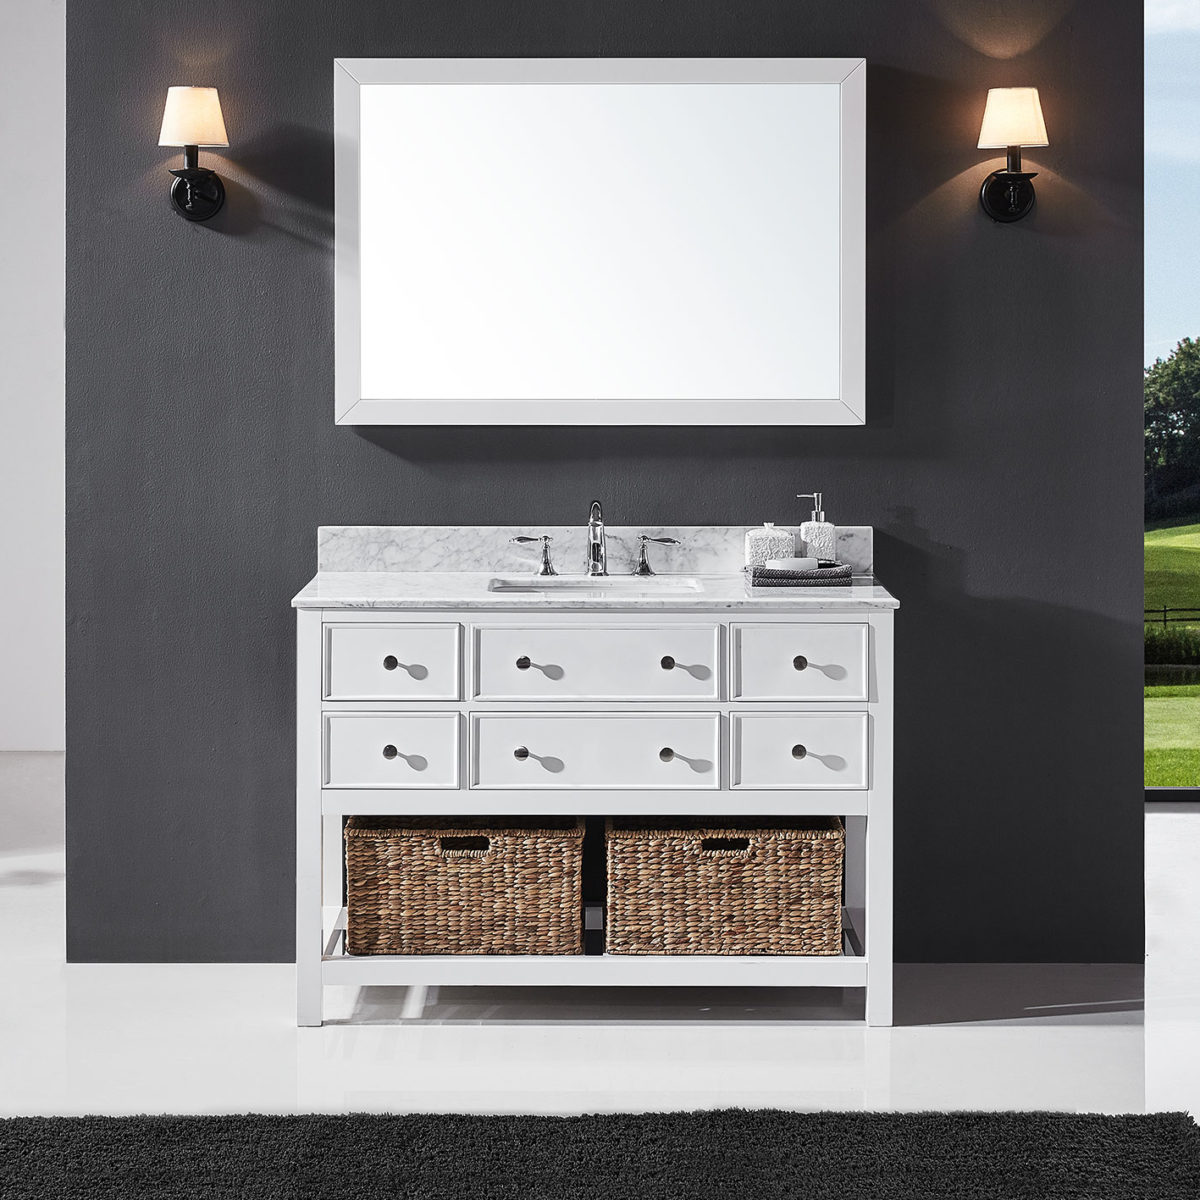 Exclusive Heritage Elodie 48 Single Sink Bathroom Vanity In White With White Carrara Marble Top Basin And Mirror Set Ed 10048s Wmwh Exclusive Heritage Usa